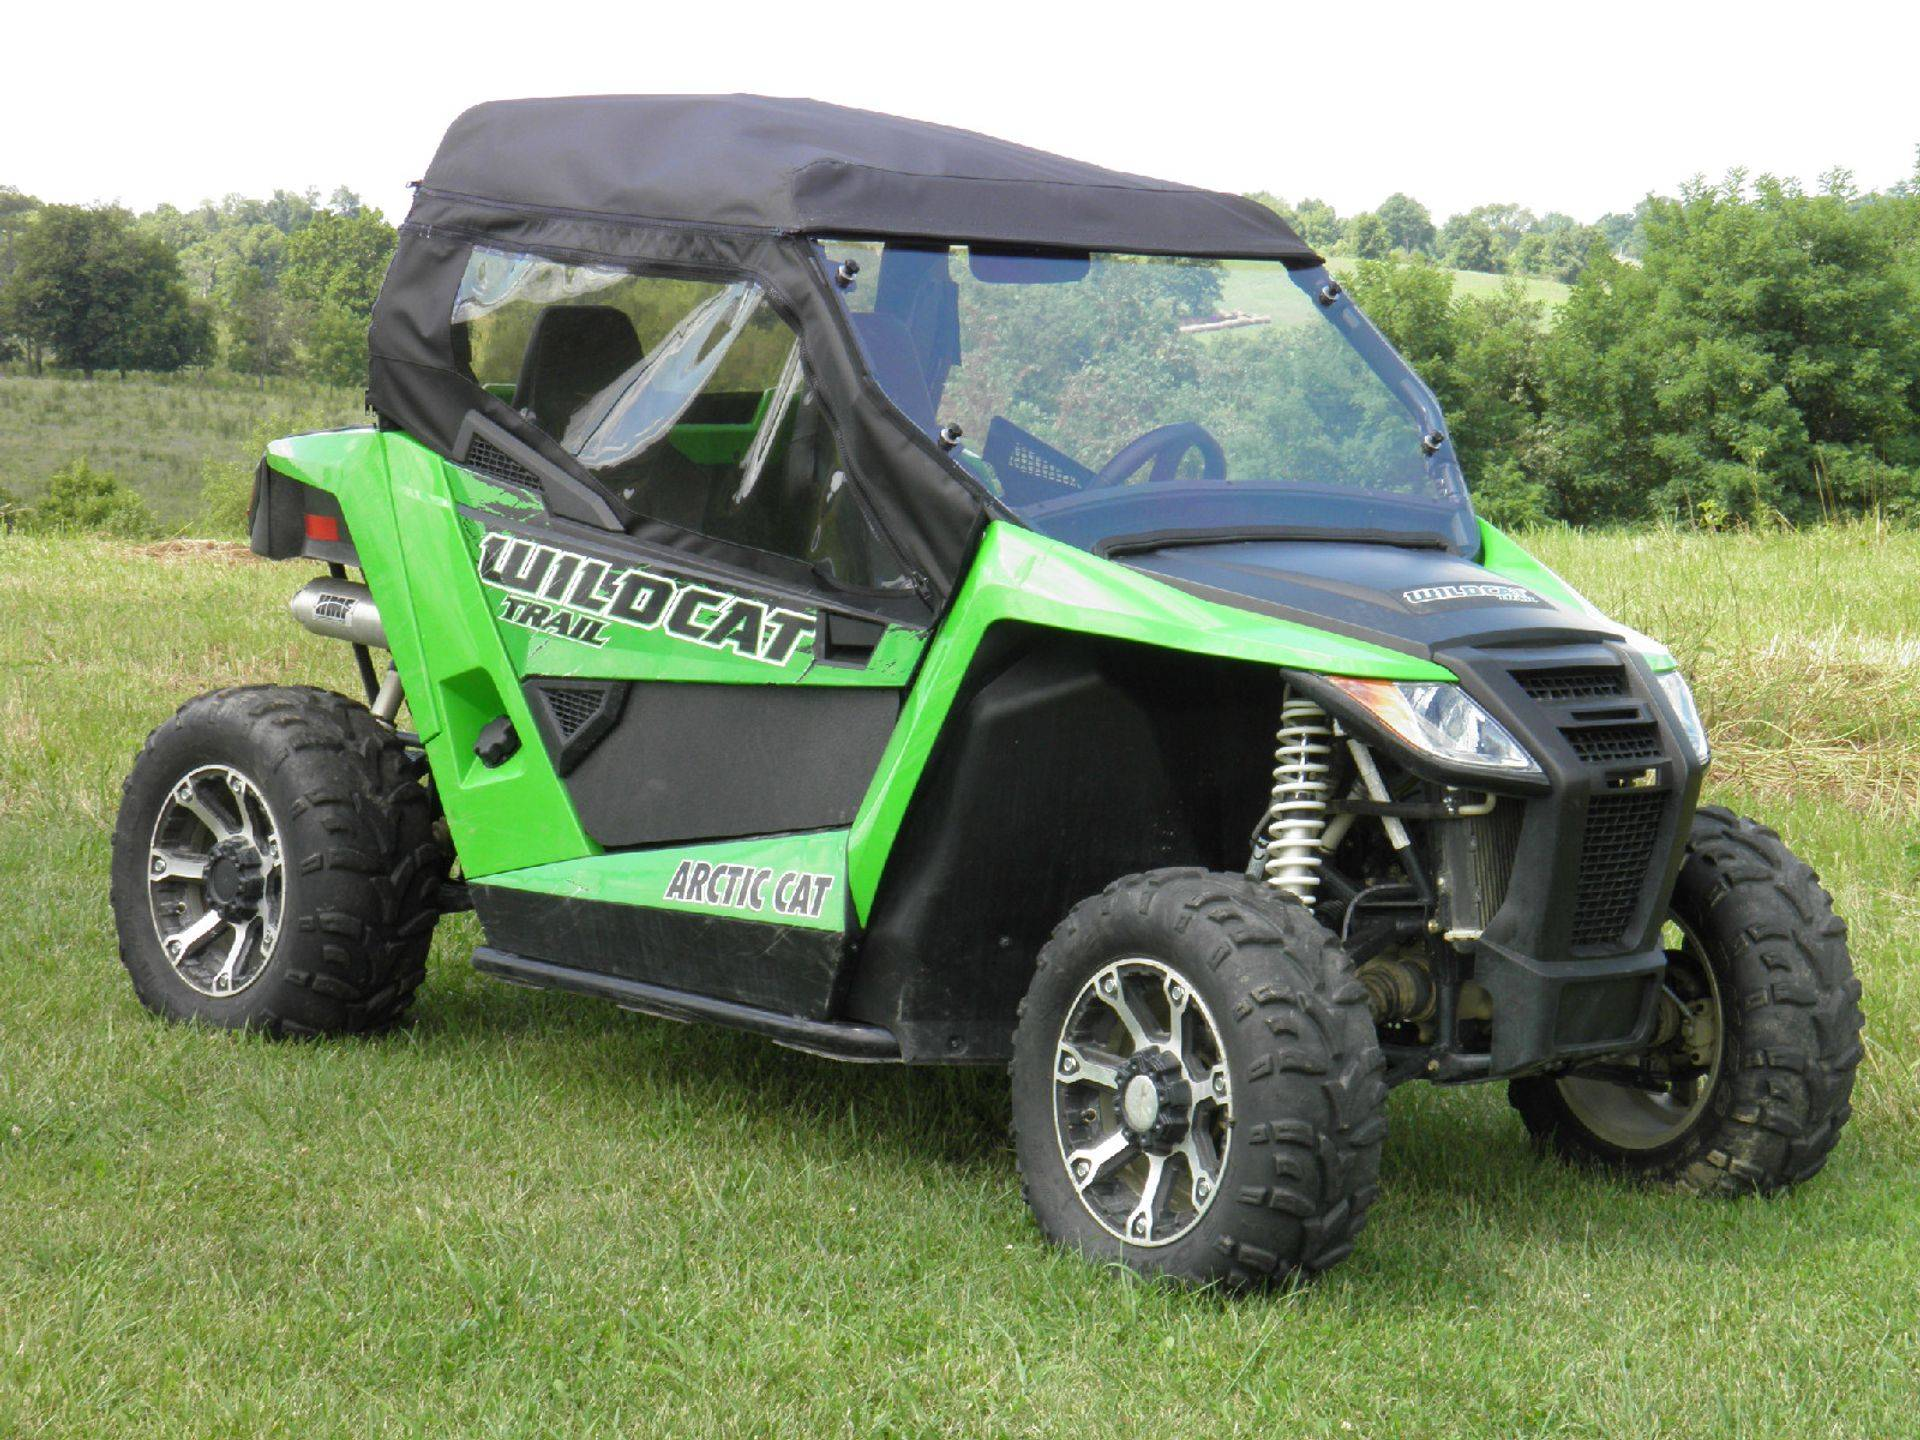 Arctic Cat Wildcat Trail  with a Lexan Windshield